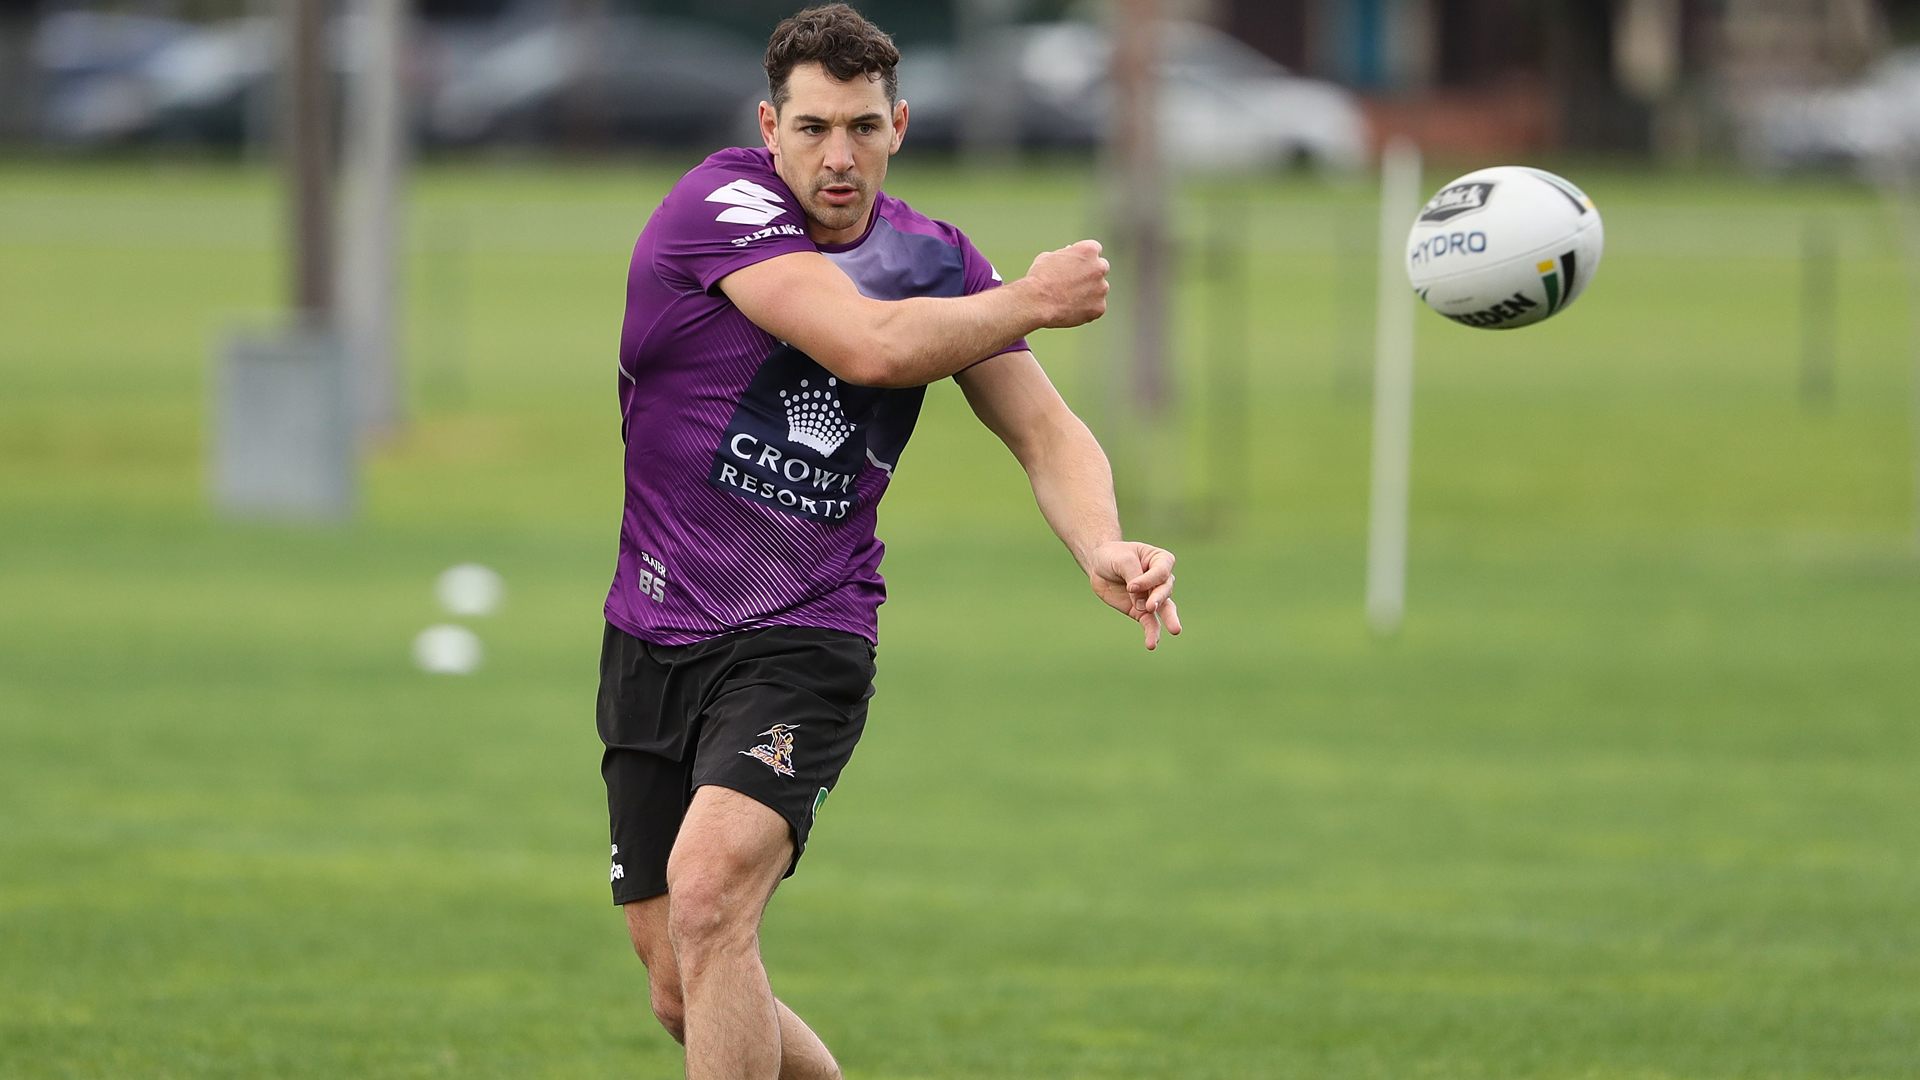 Battling a shoulder injury, Billy Slater will miss Melbourne Storm's NRL opener against the Canterbury Bulldogs.